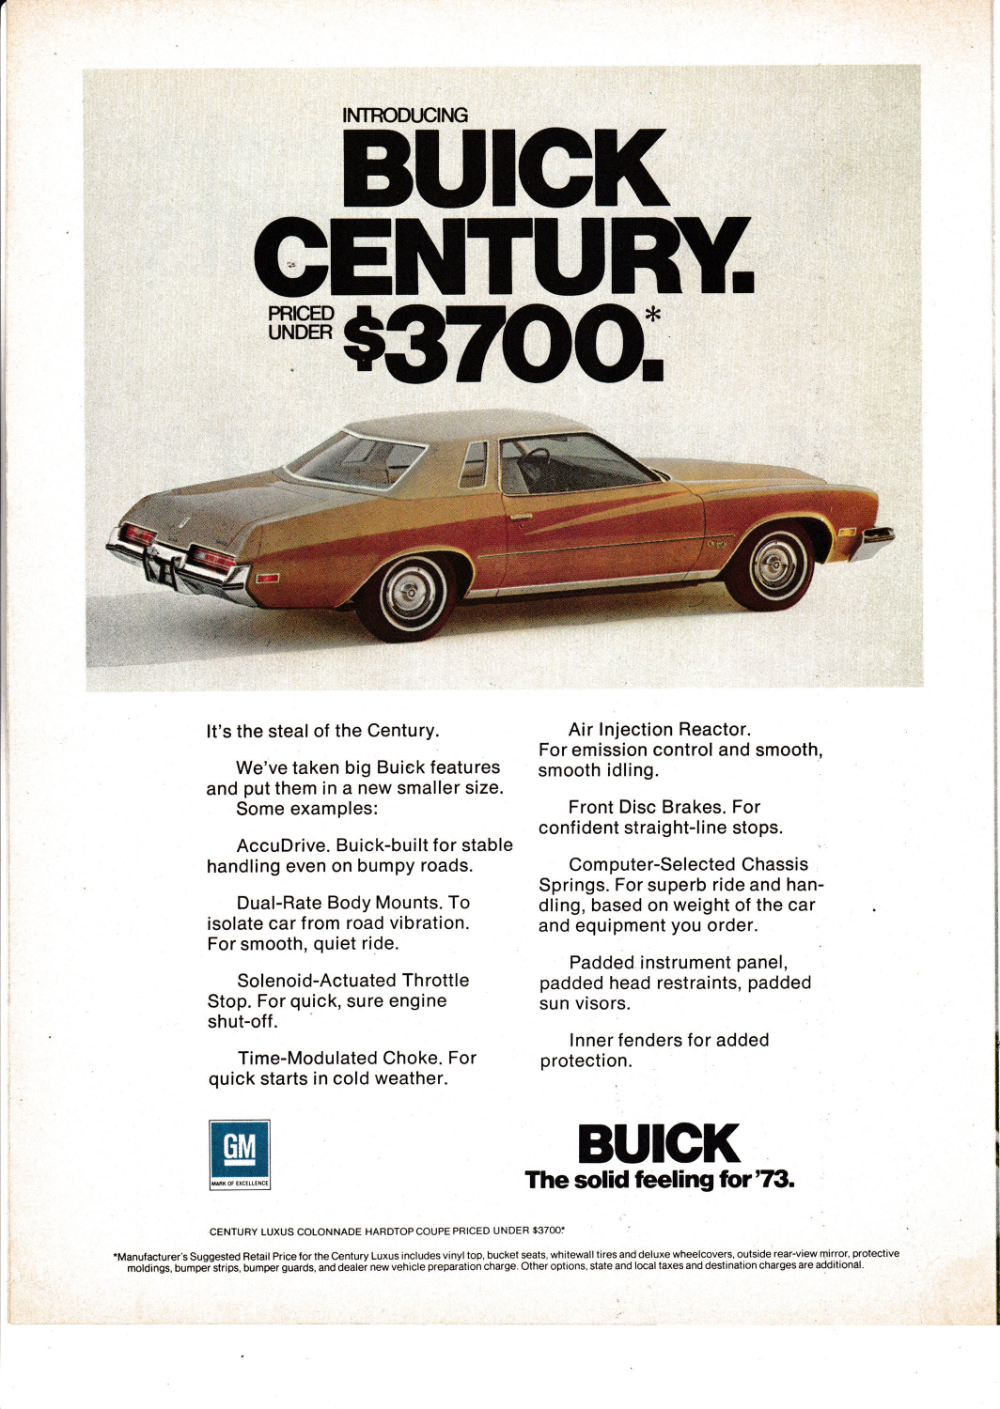 73 Buick Century : buick, century, Buick, Century, Colonnade, Hardtop, Coupe-Under, Century,, Buick,, Automobile, Advertising